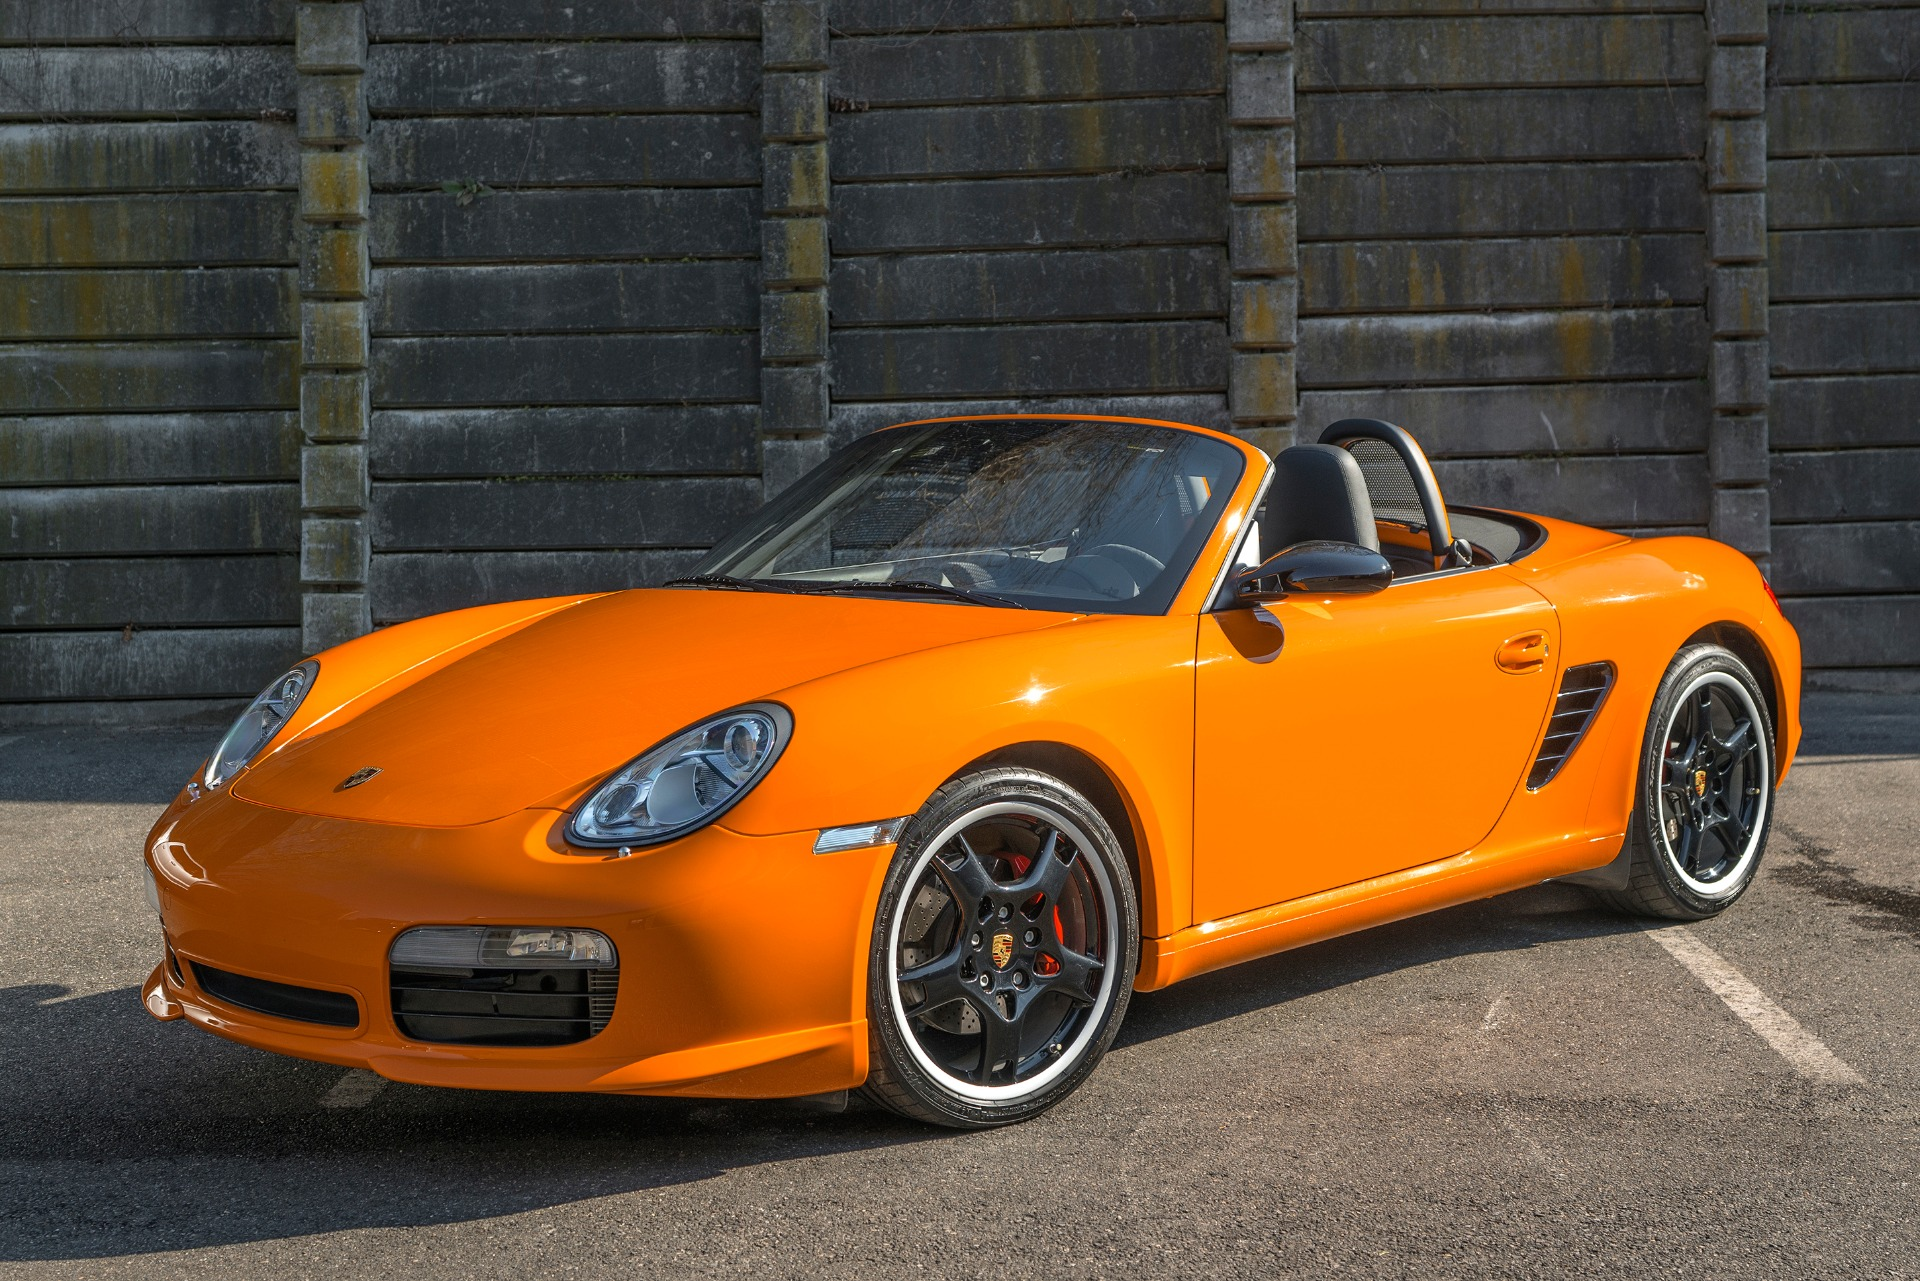 2008 Porsche Boxster S Limited Edition S Stock 1487 For